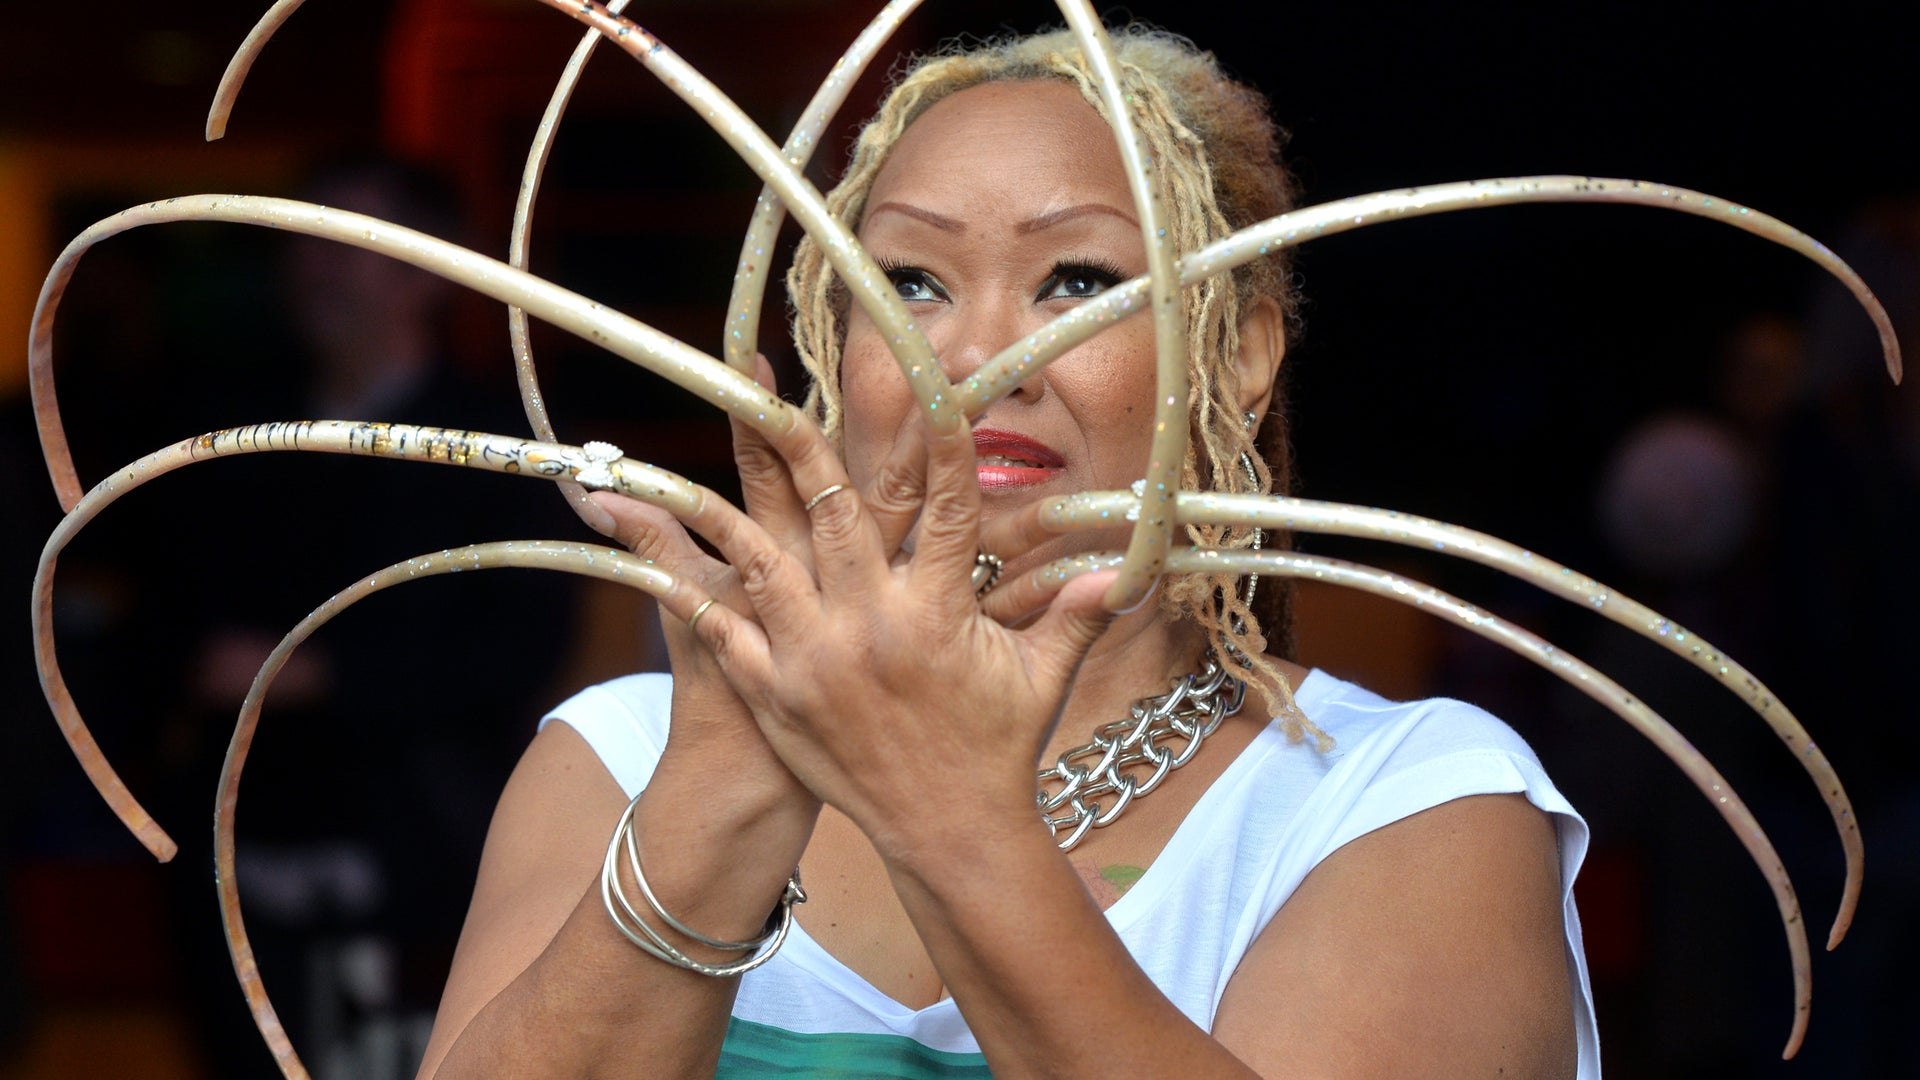 Texas Woman Who Grew Her Fingernails Over 18 Feet Long Shares Her Daily Routine